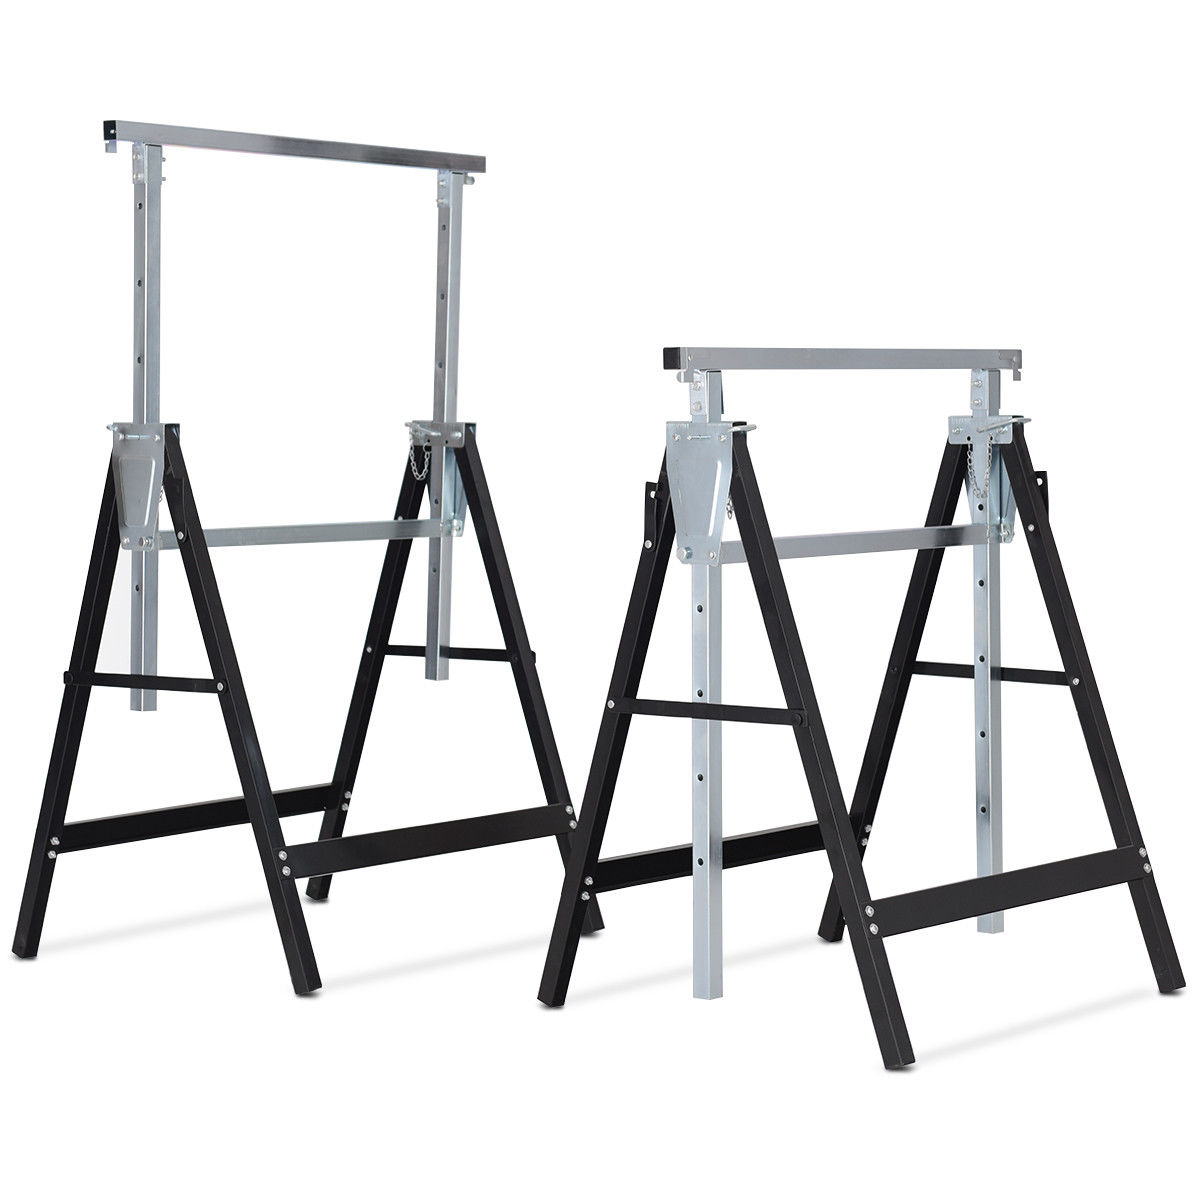 Costway 2 Pack Sawhorse Height Adjustable Folding Heavy Duty Trestle 440 lbs Capacity